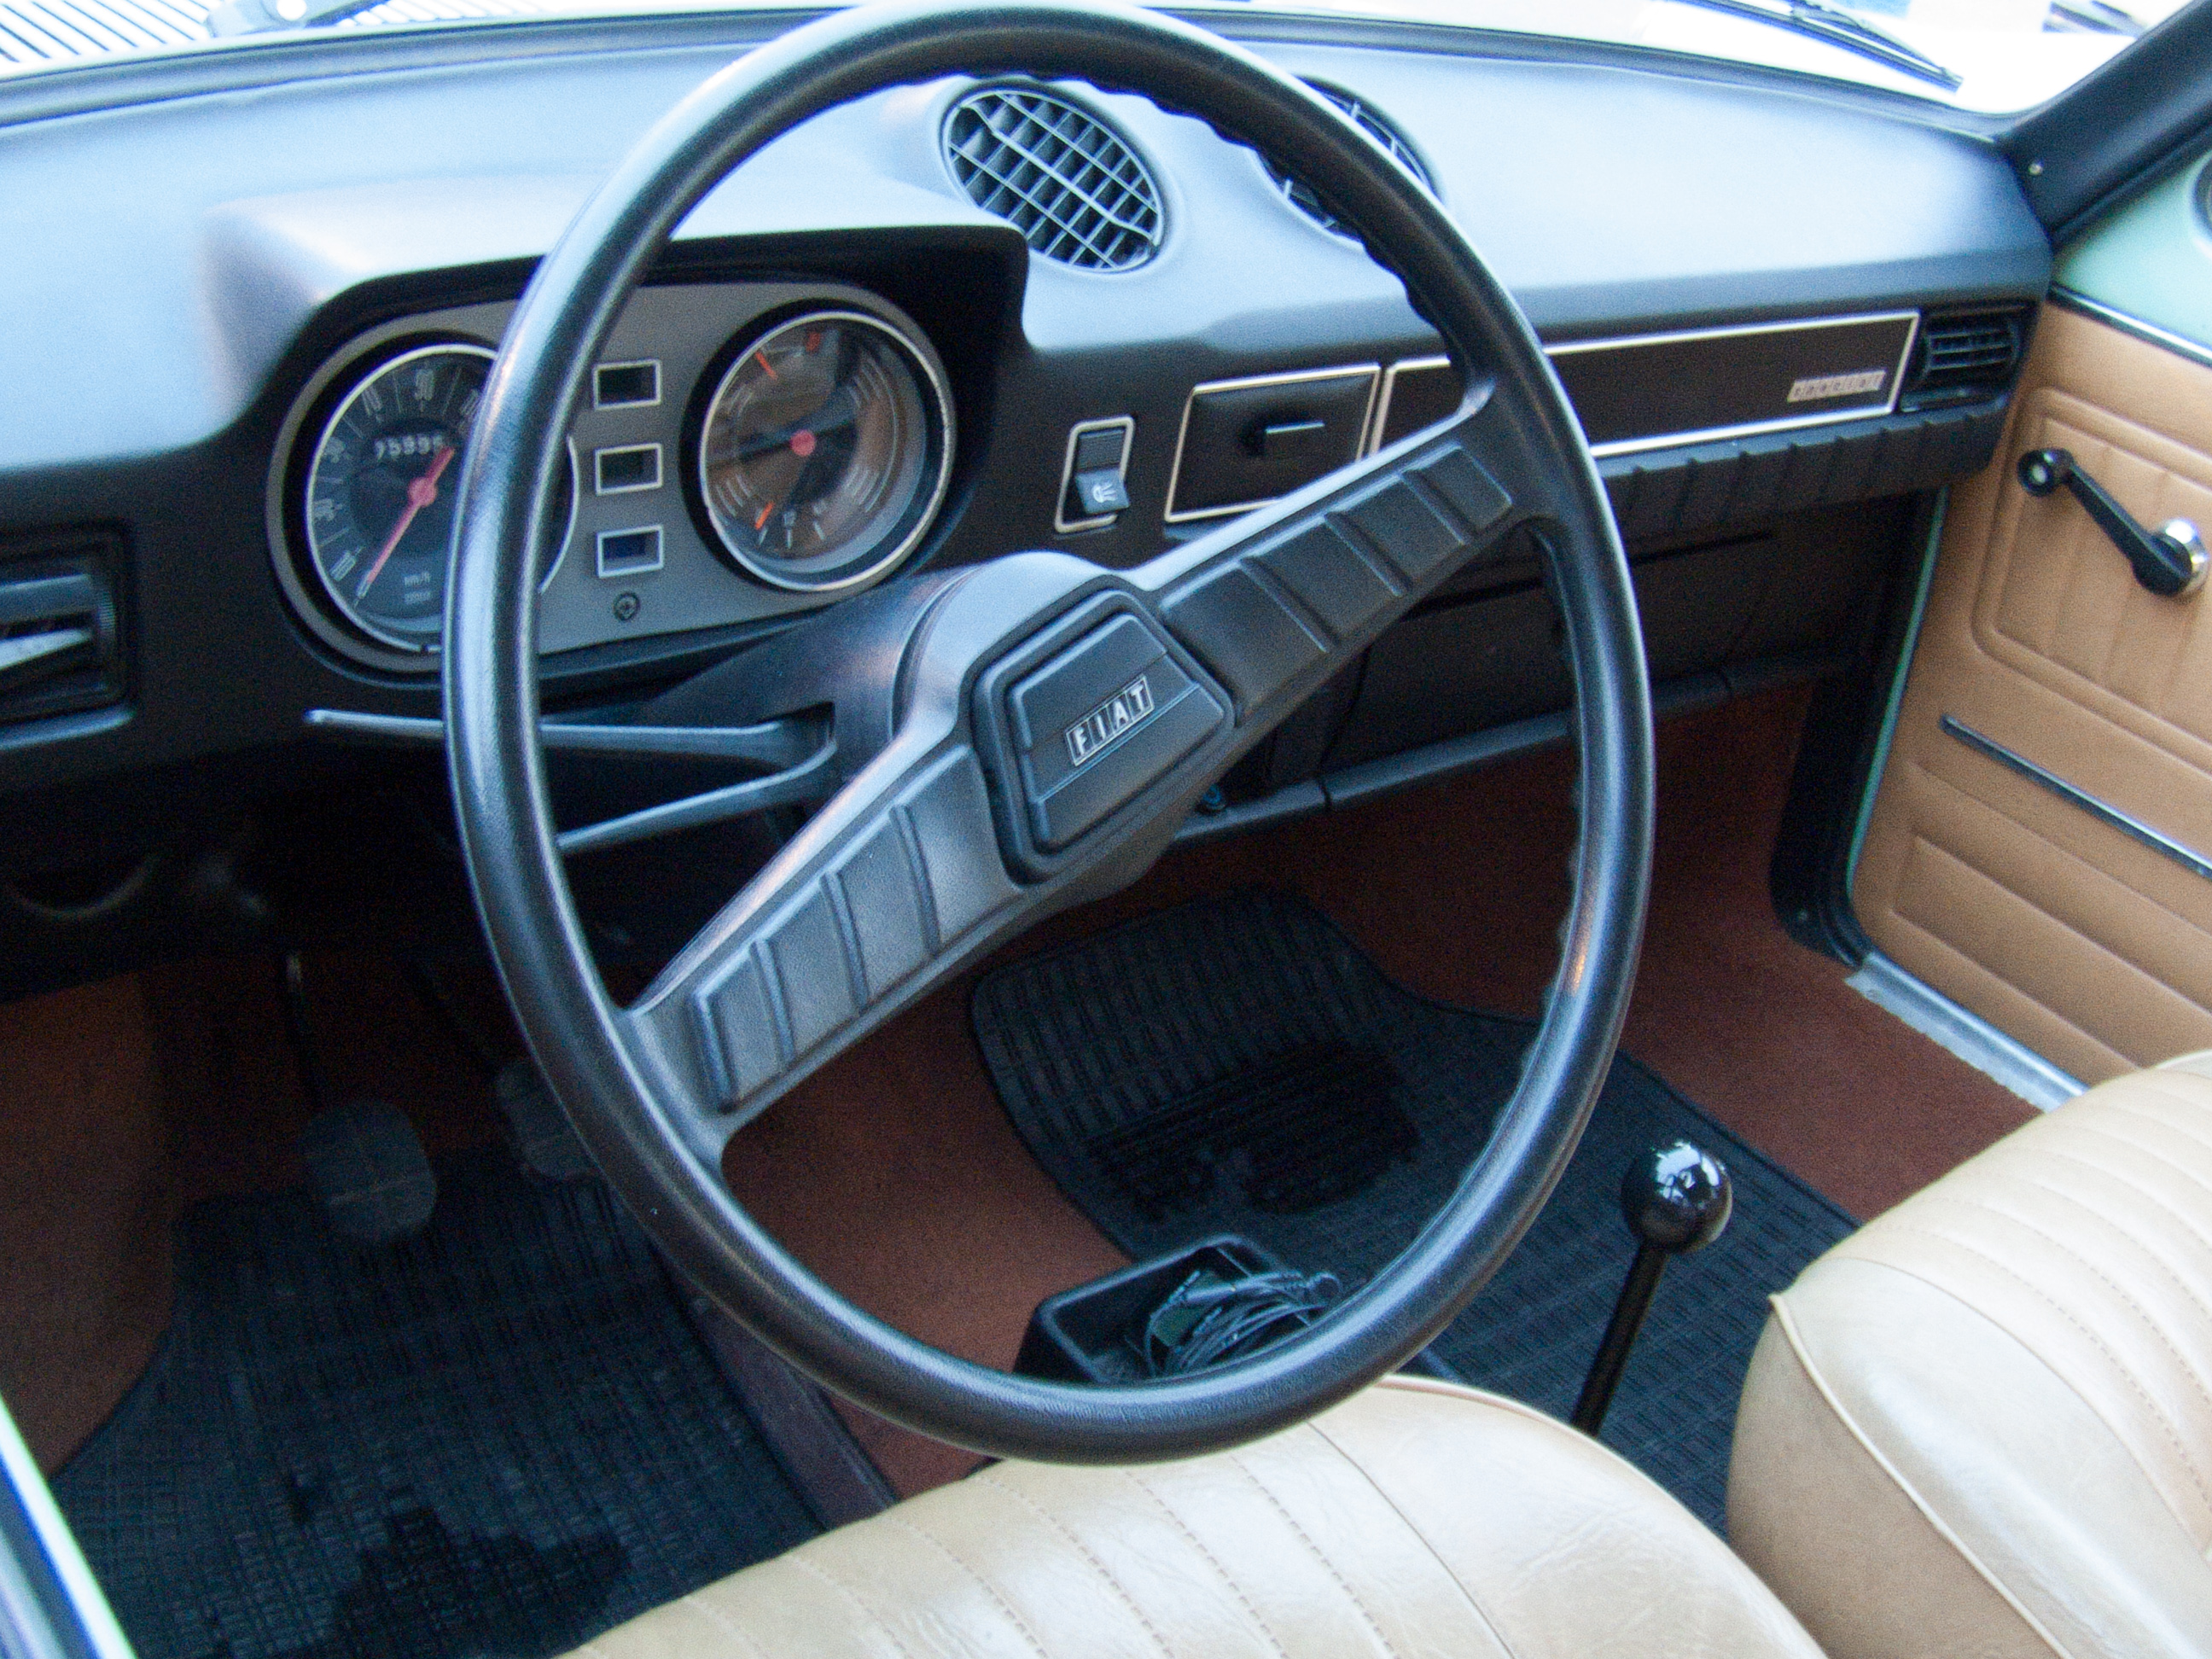 File:Fiat 128 Special interior (13642441273).jpg - Wikimedia Commons